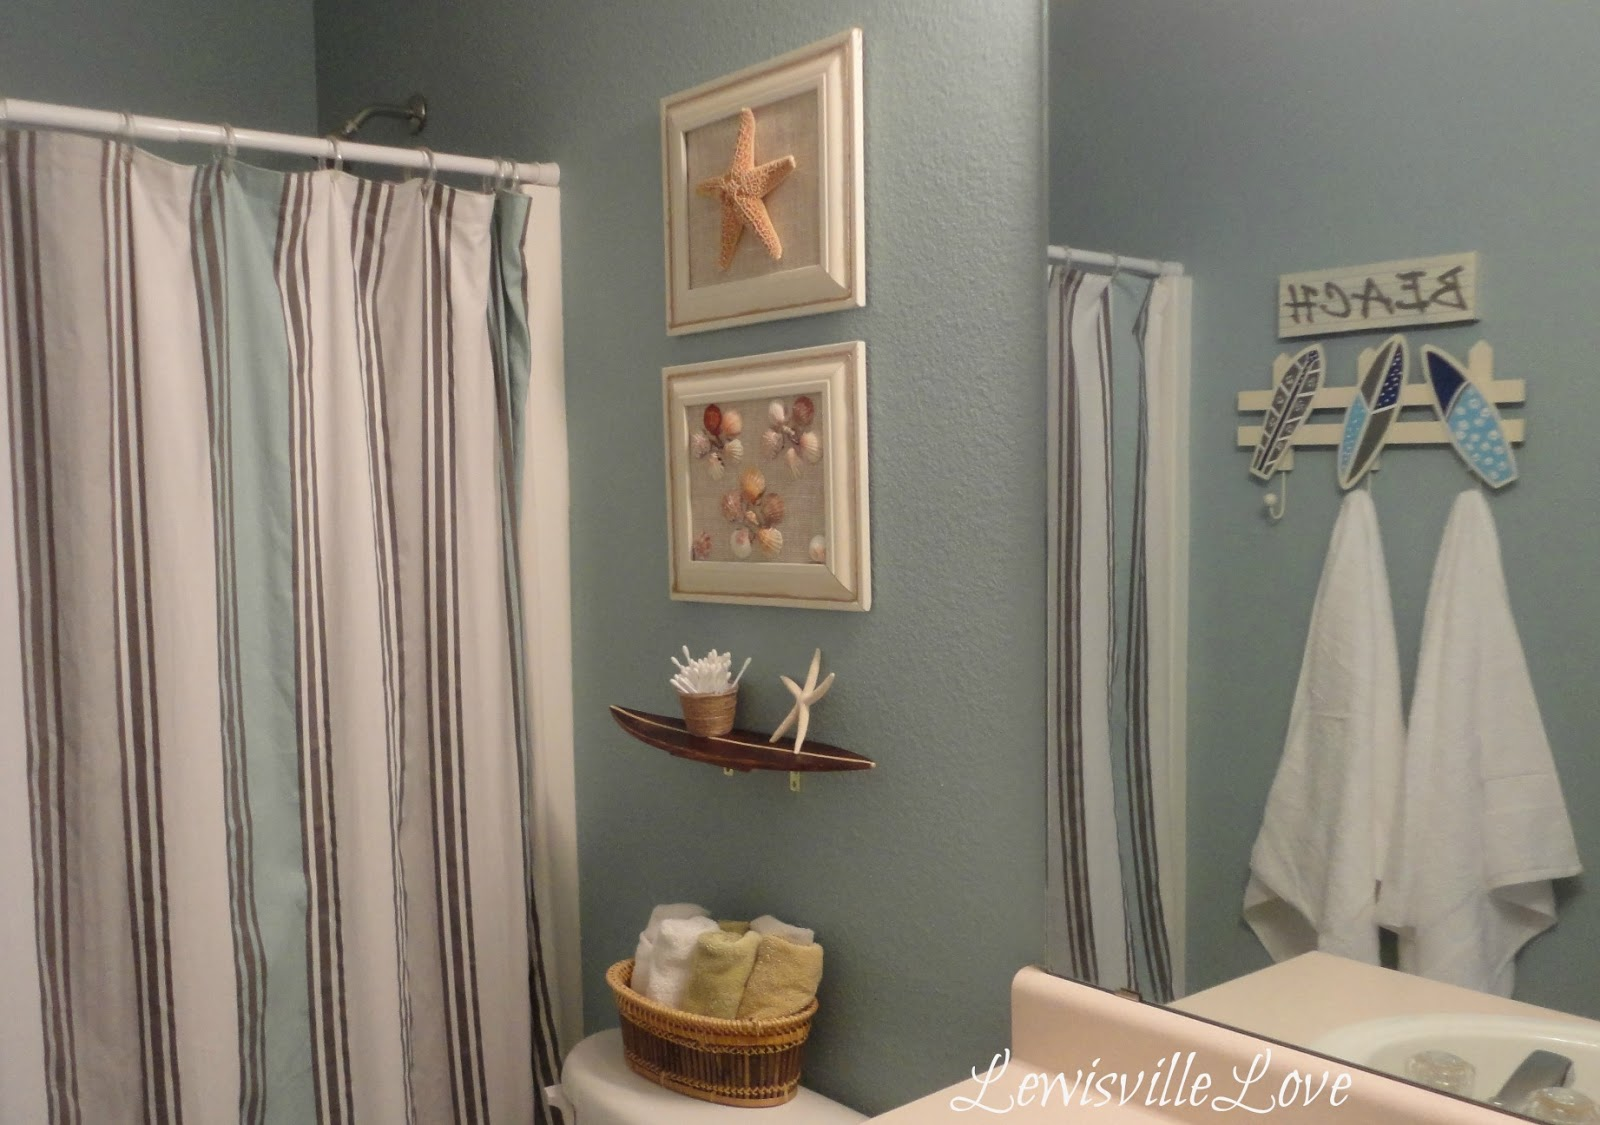 Costal Bathroom Decor: Lewisville Love: Beach Theme Bathroom Reveal